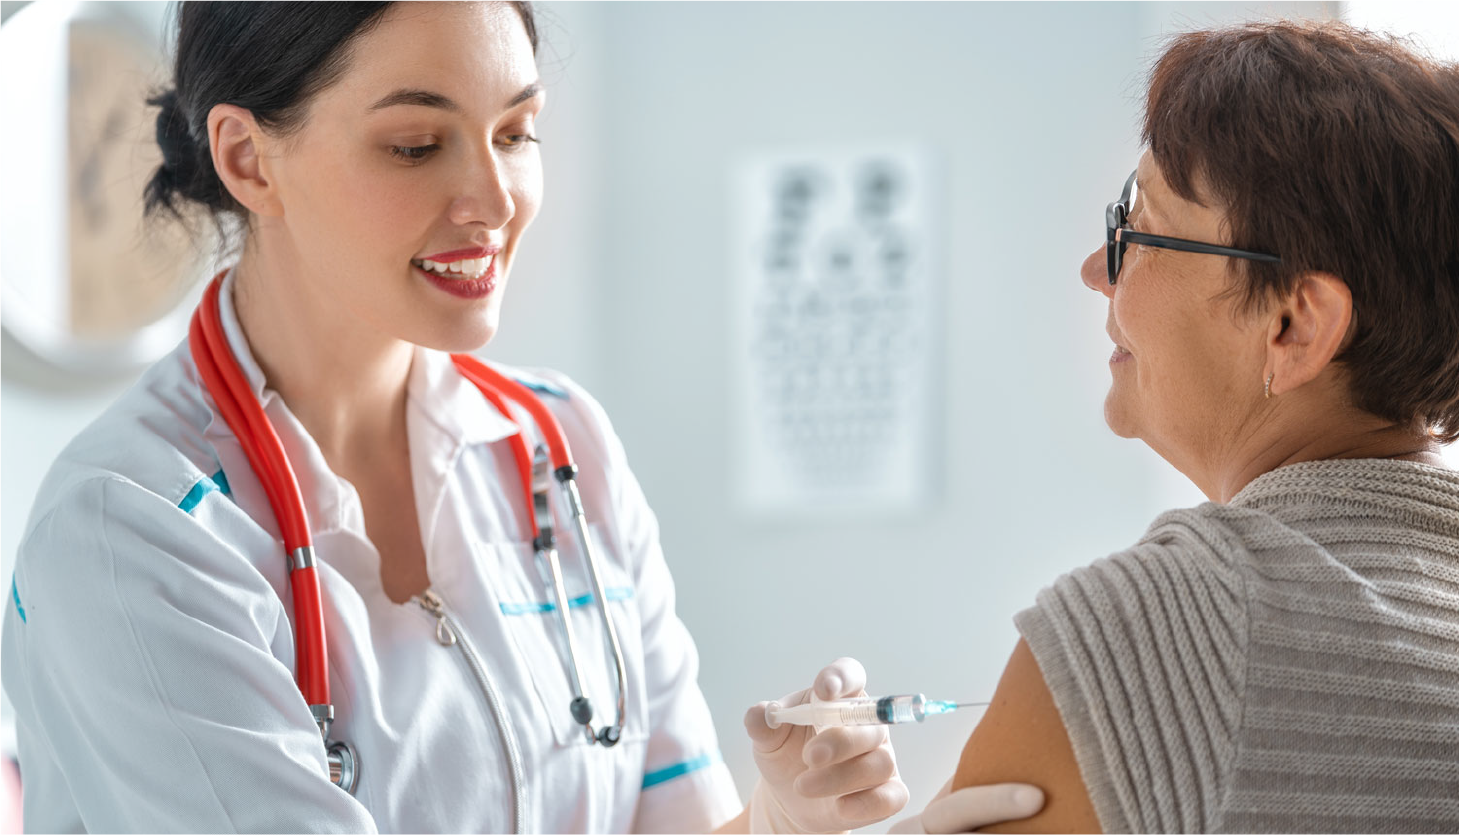 Patient Receiving an injection into the arm by her provider